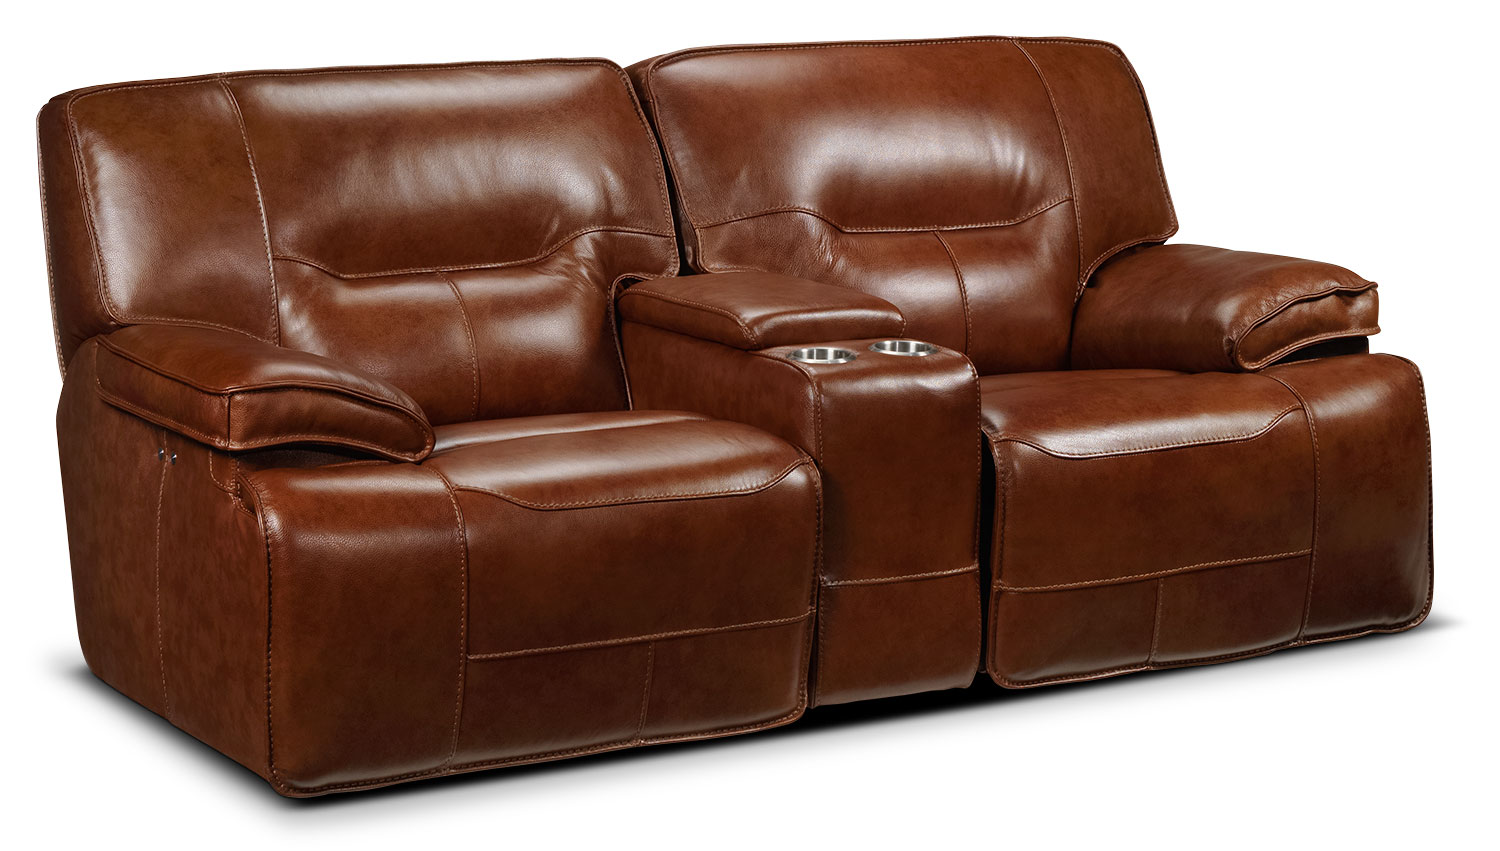 Baxter Power Glider Reclining Loveseat - Chestnut